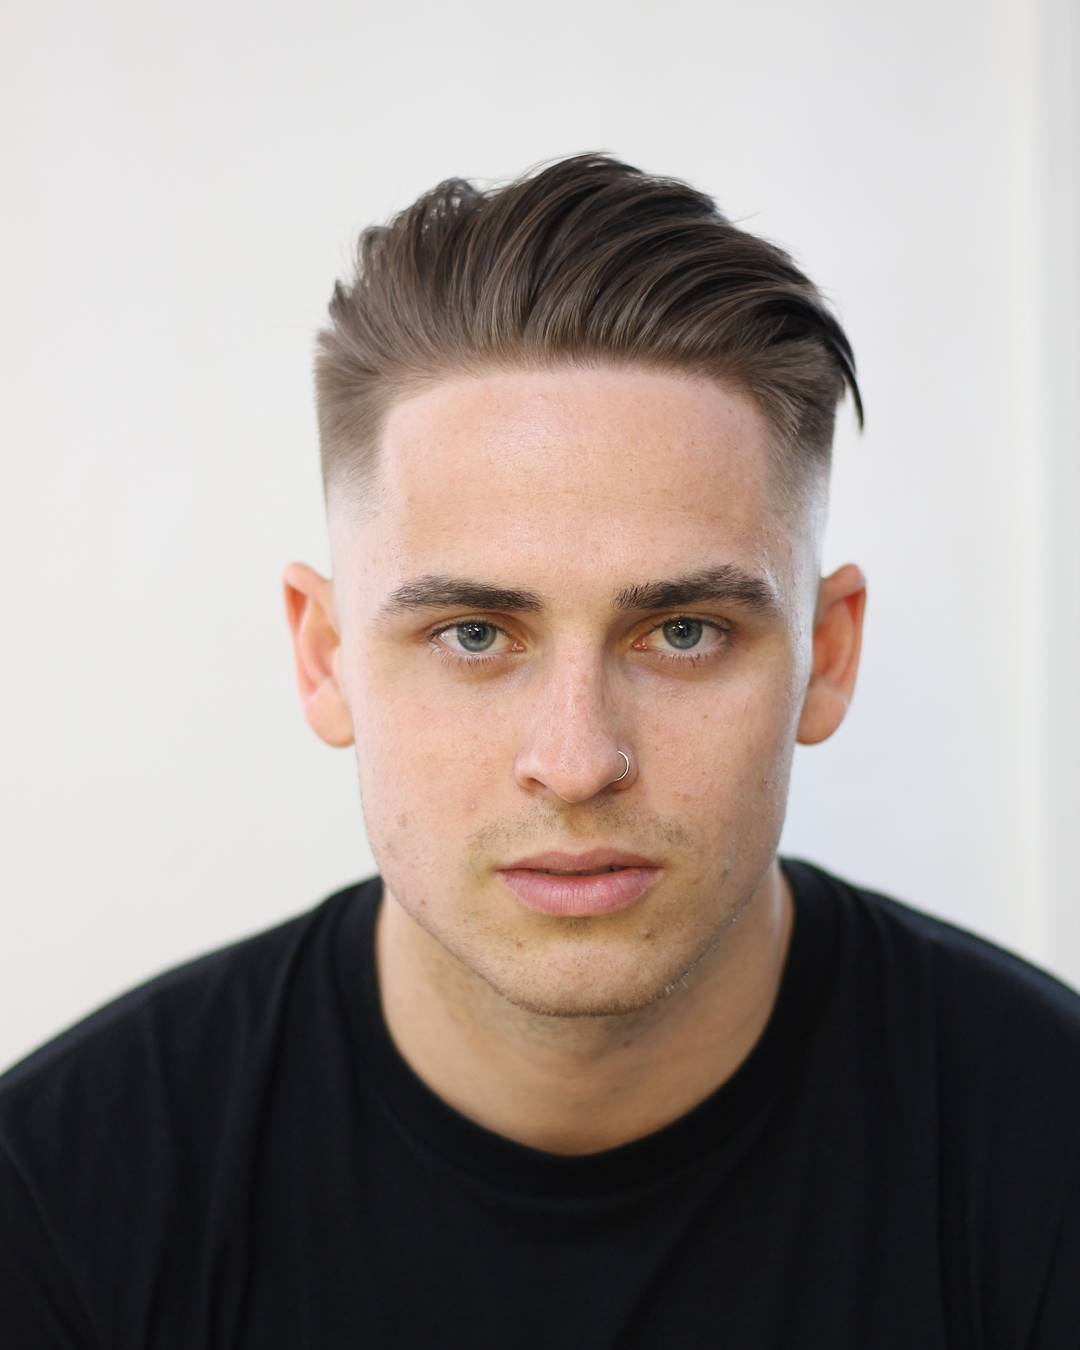 Slick Hairstyle For Men With Straight Hair